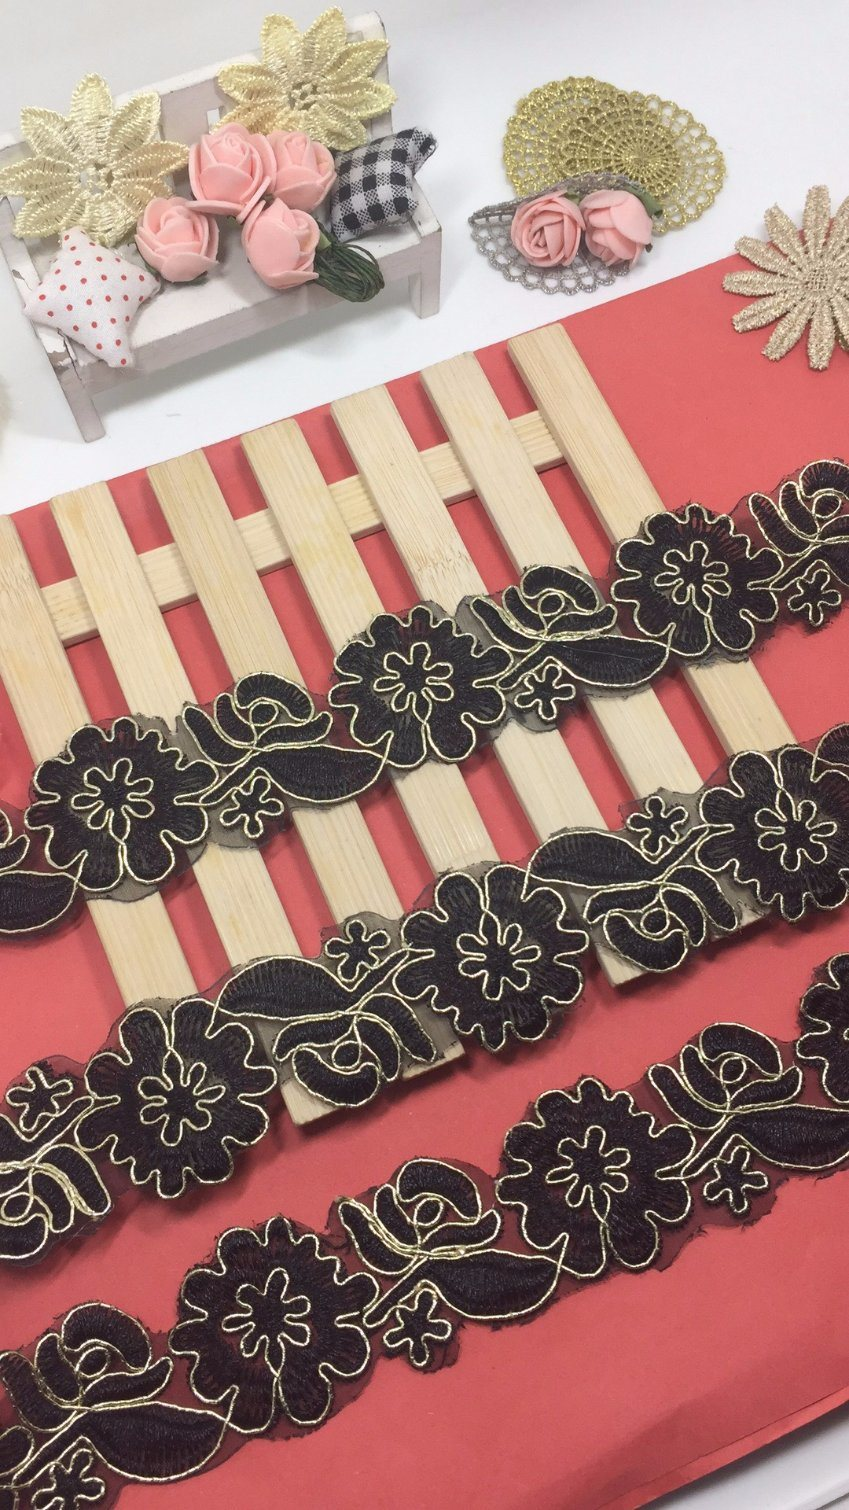 New Design 4.5cm Width Coiling Embroidery Trimming Lace for Garments Accessory & Home Textiles & Curtains